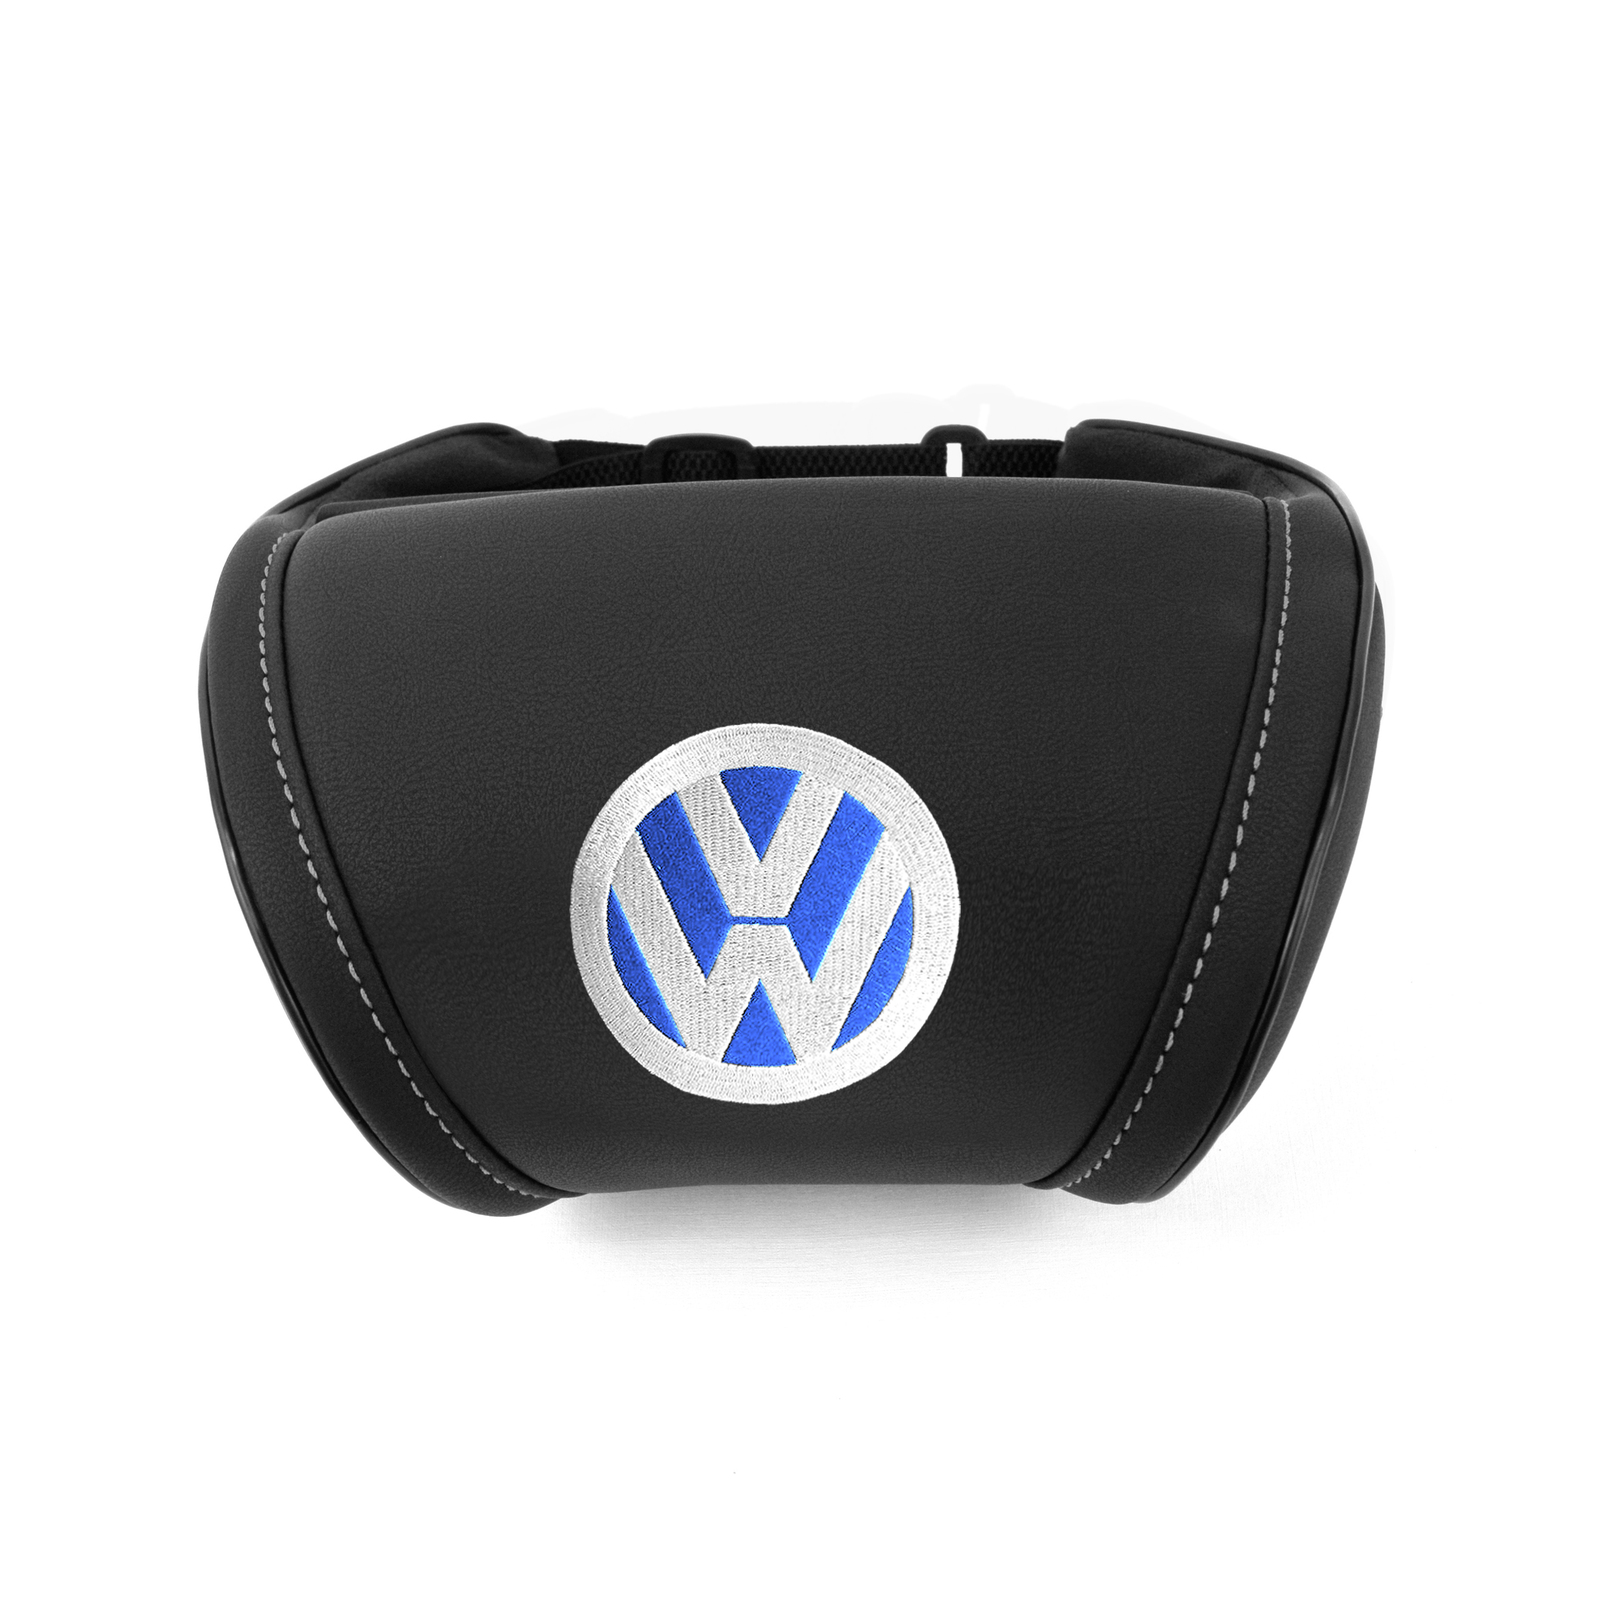 embroidery on seat and like similar inteiror emblem black cushion items car rest a pillow neck accessories volkswagen blue head